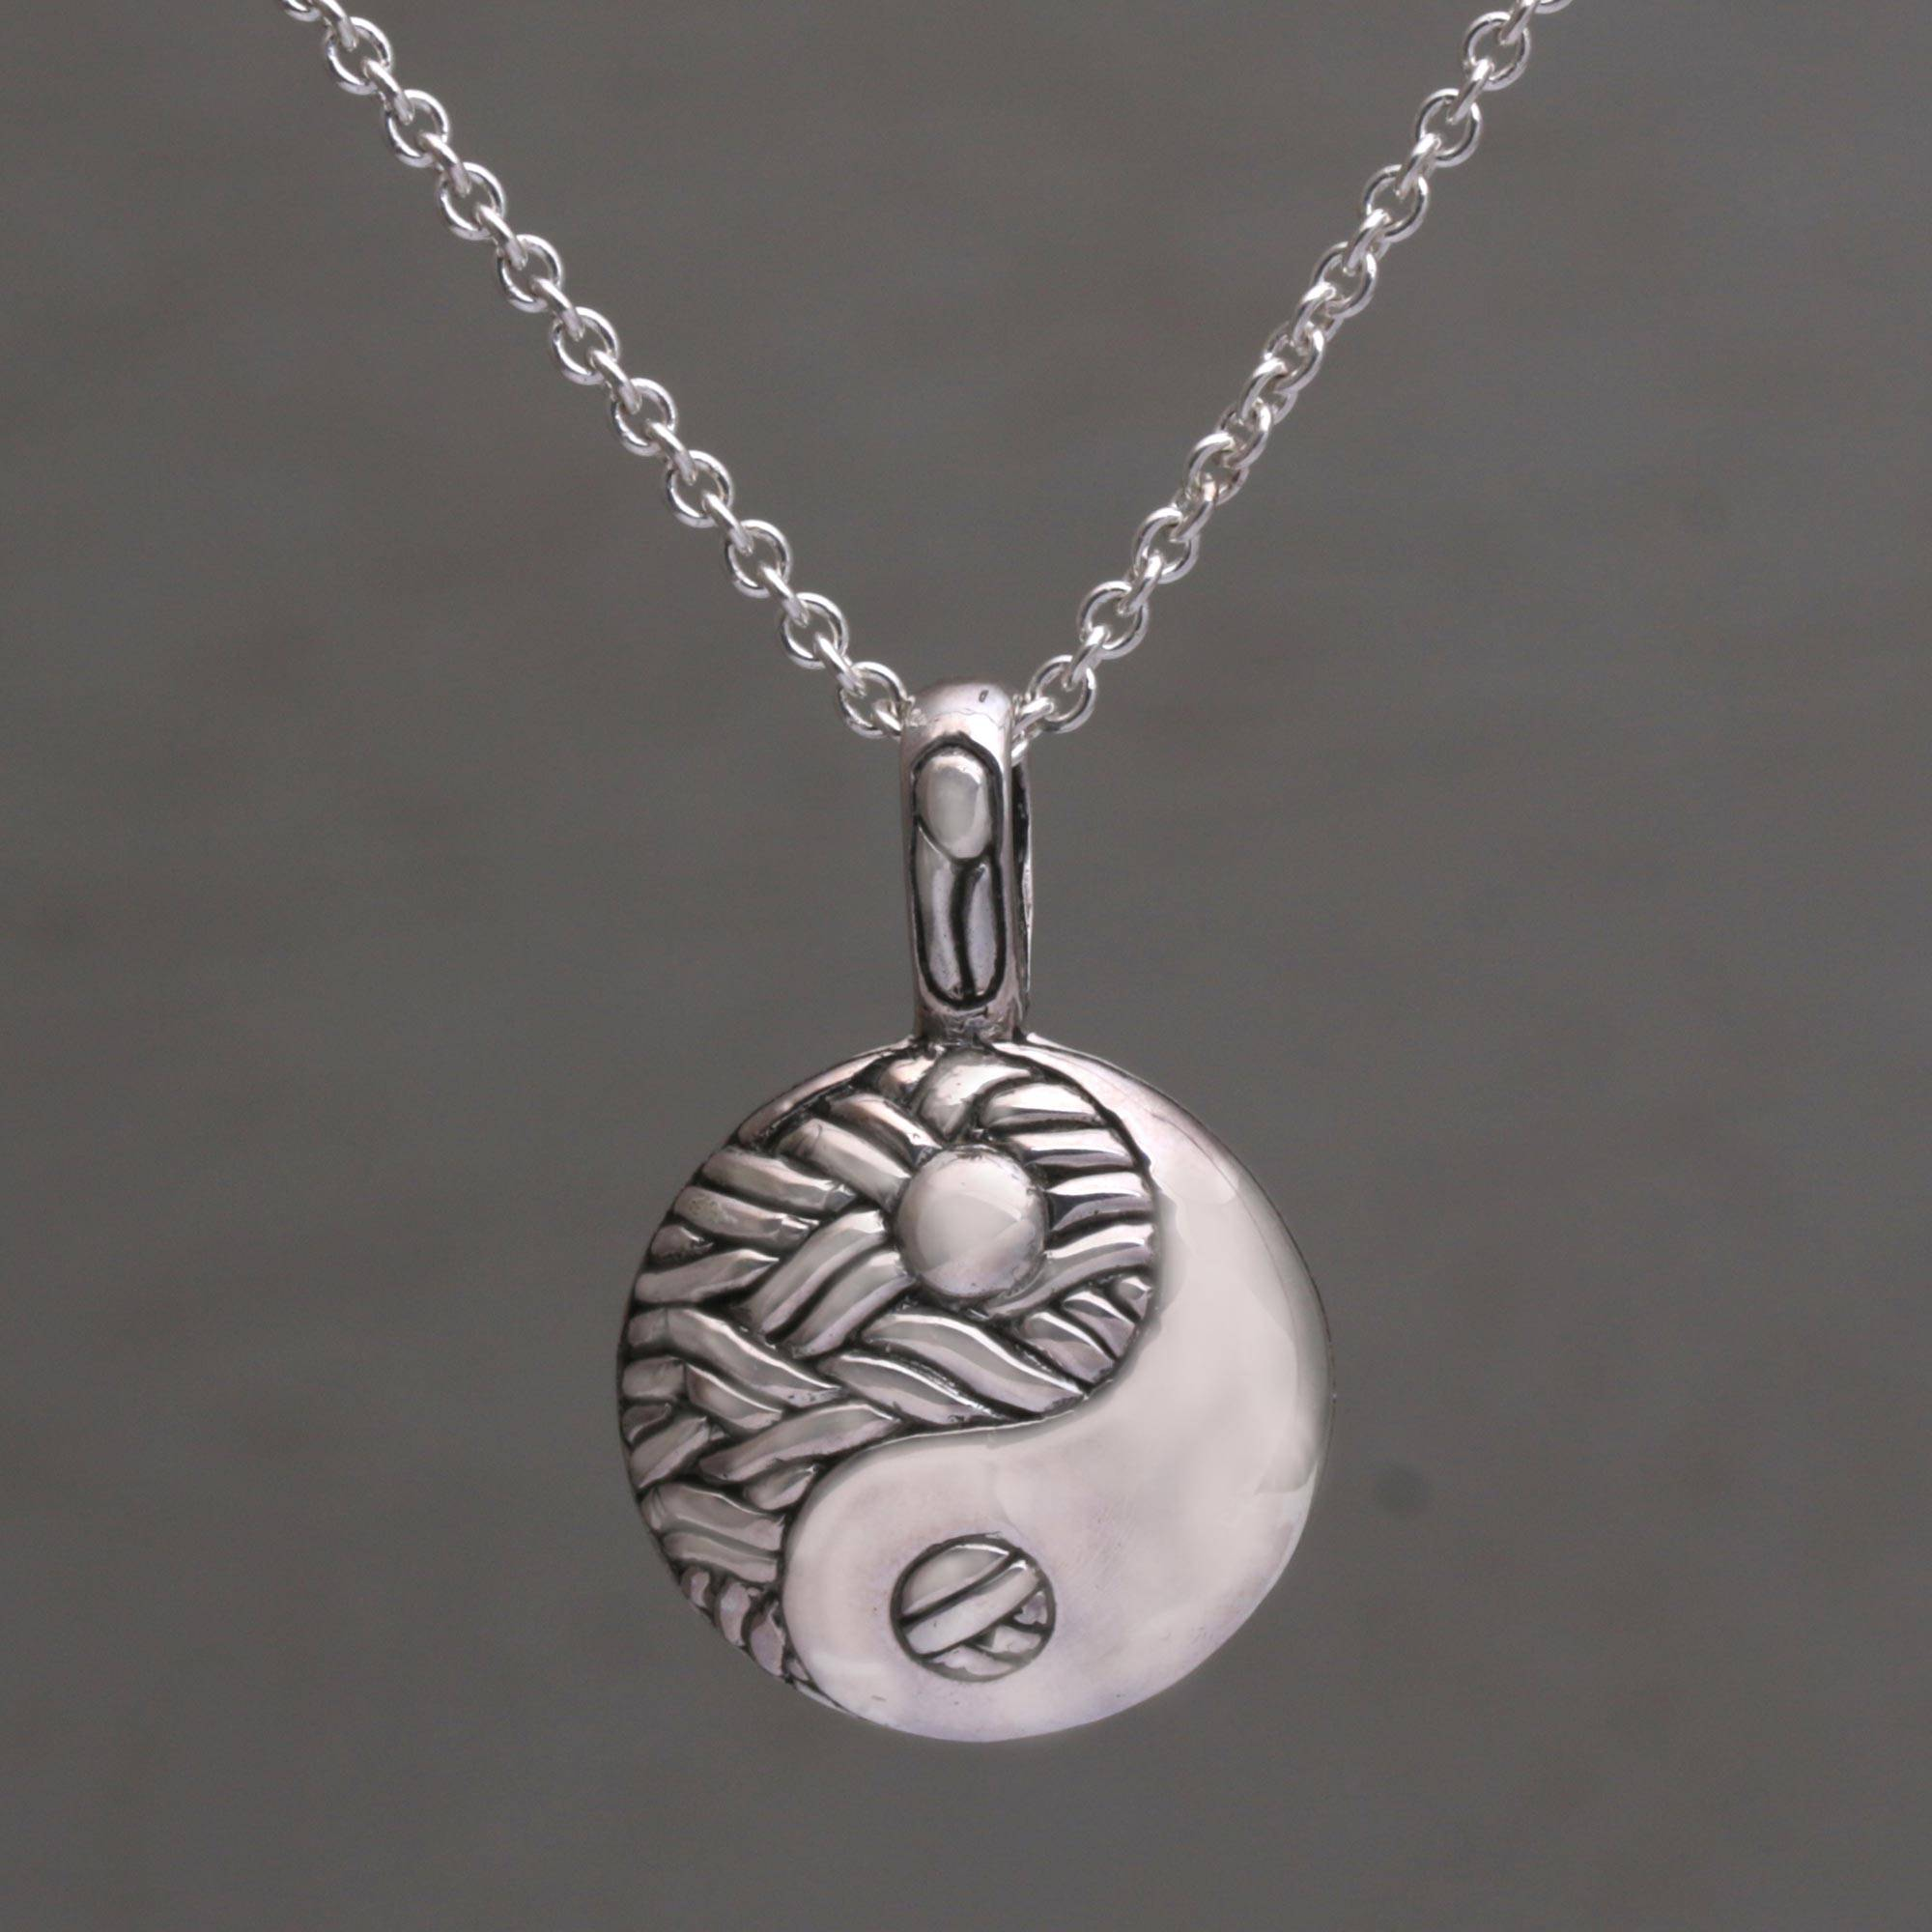 Yin Yang Symbol Red White Necklace Pendant Buddhist Silver Chain Glass